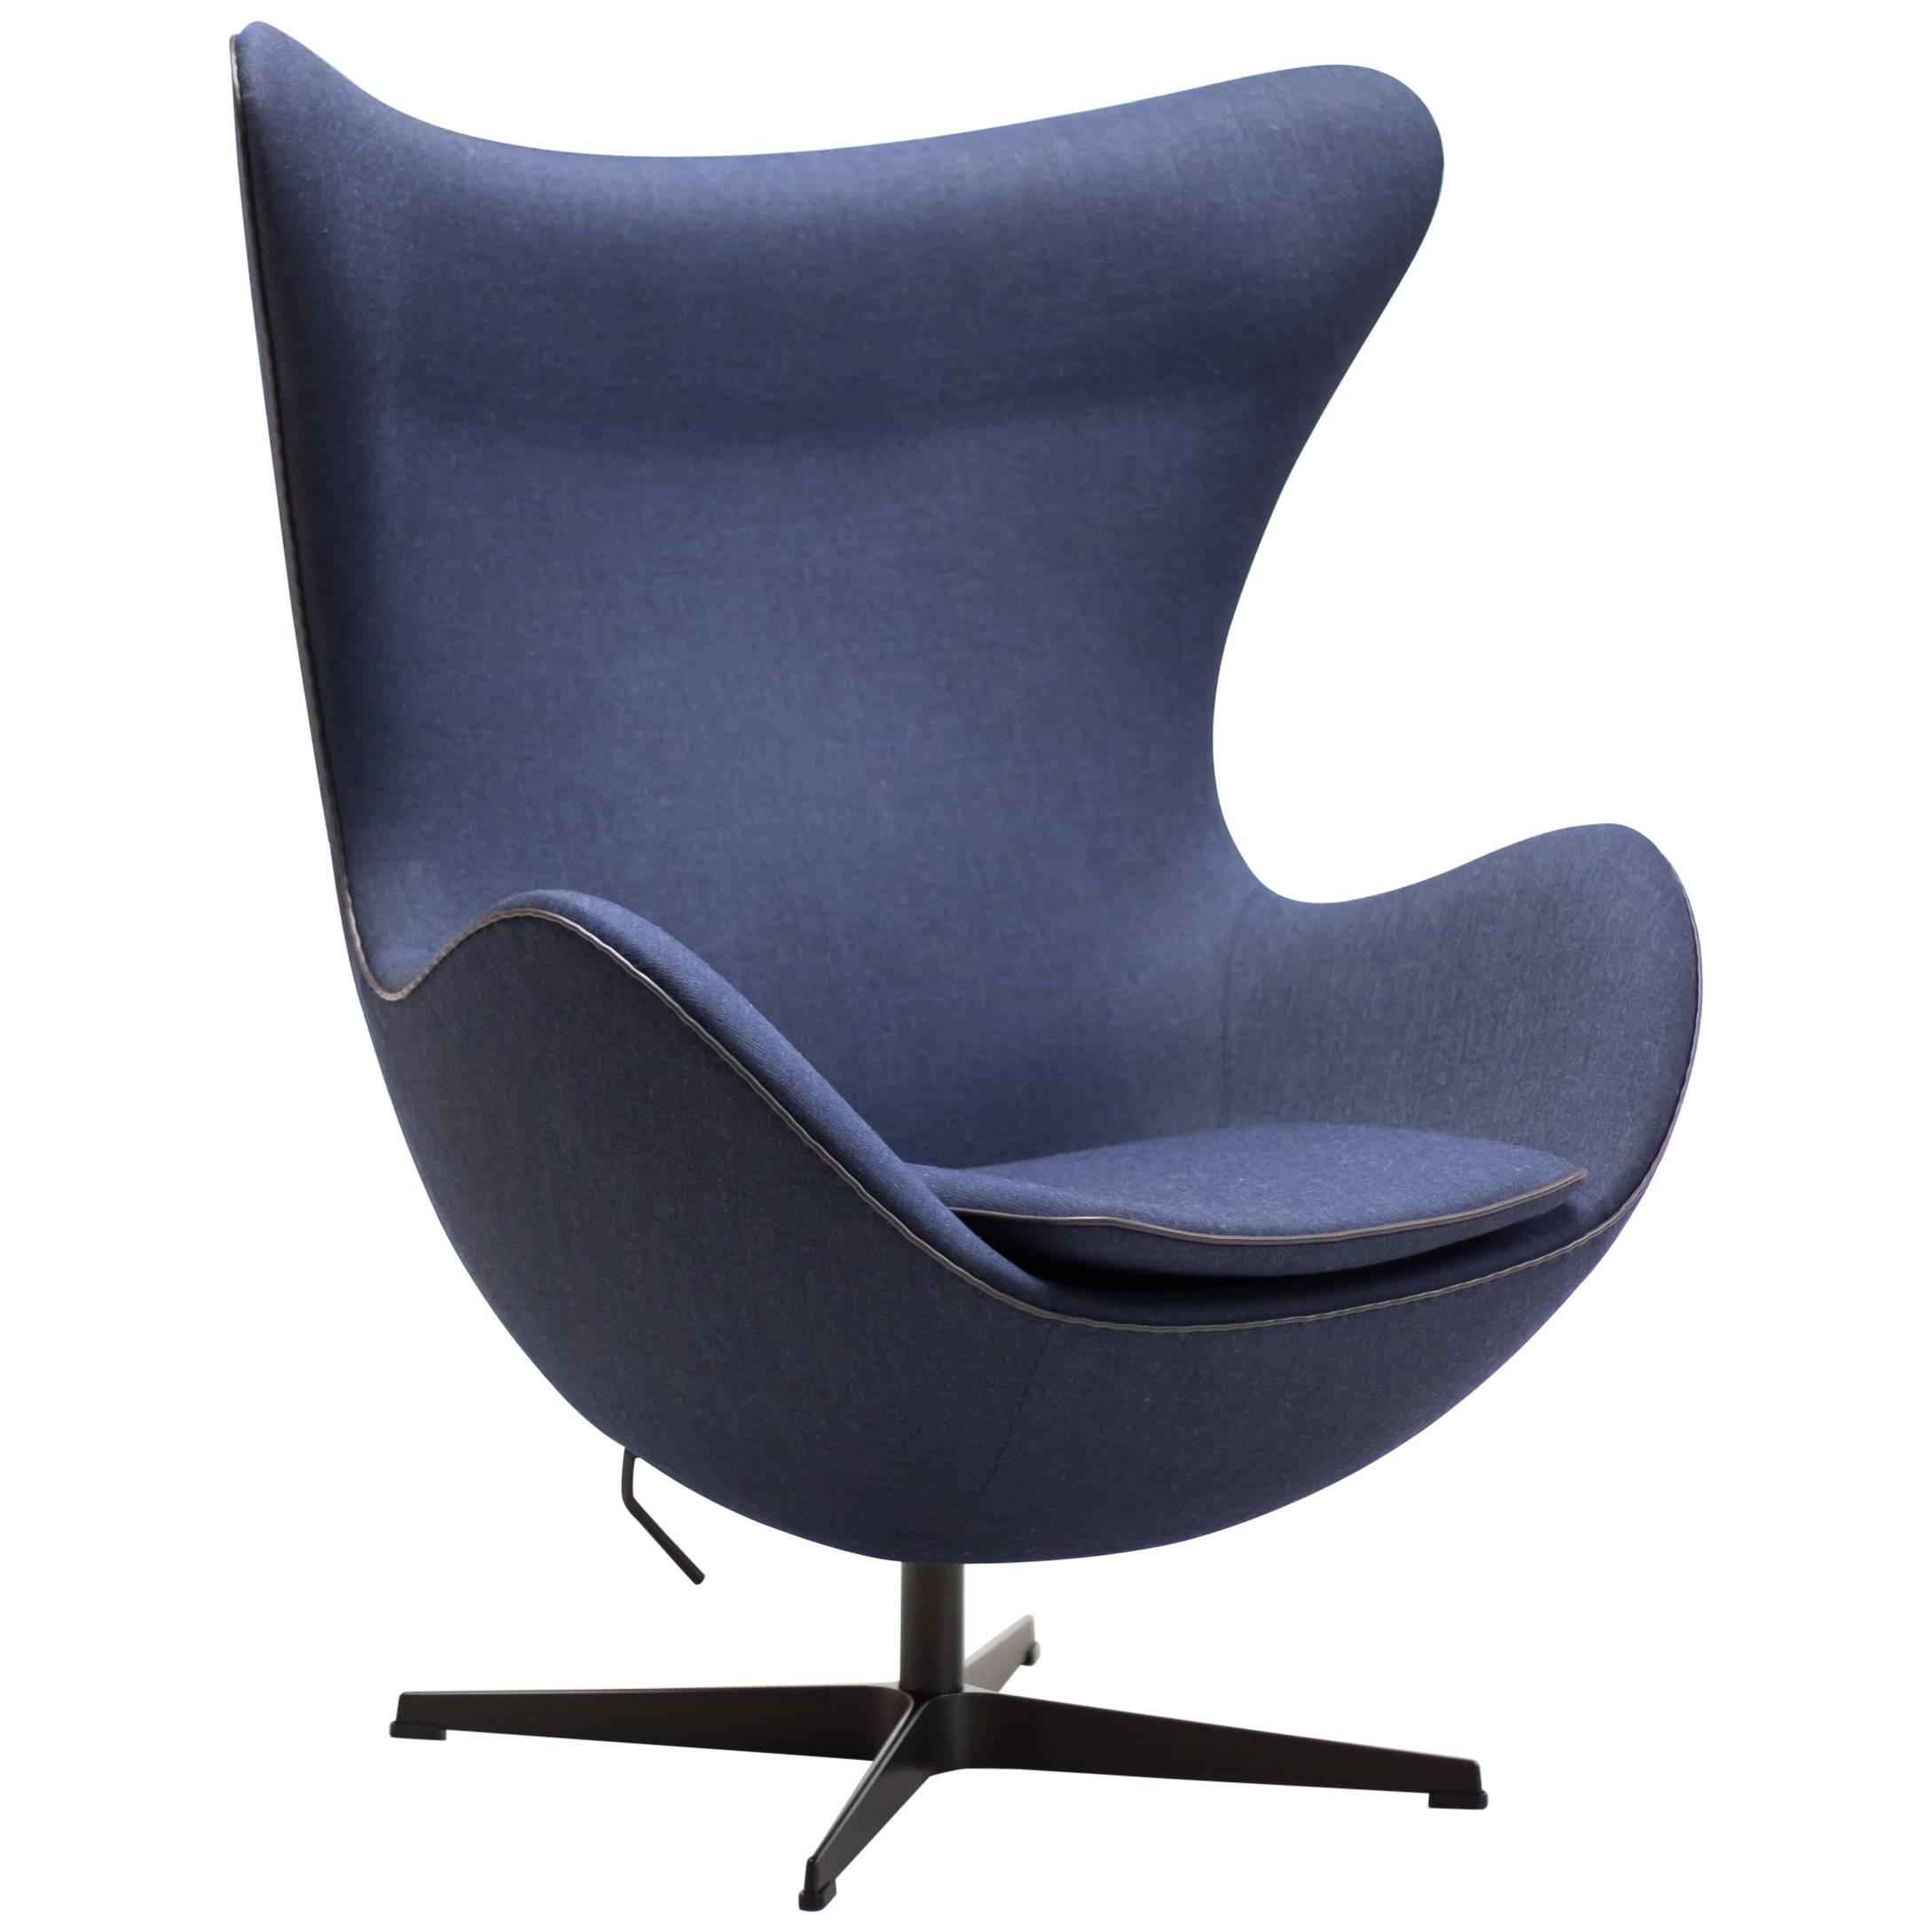 jacobsen series skandium egg chair